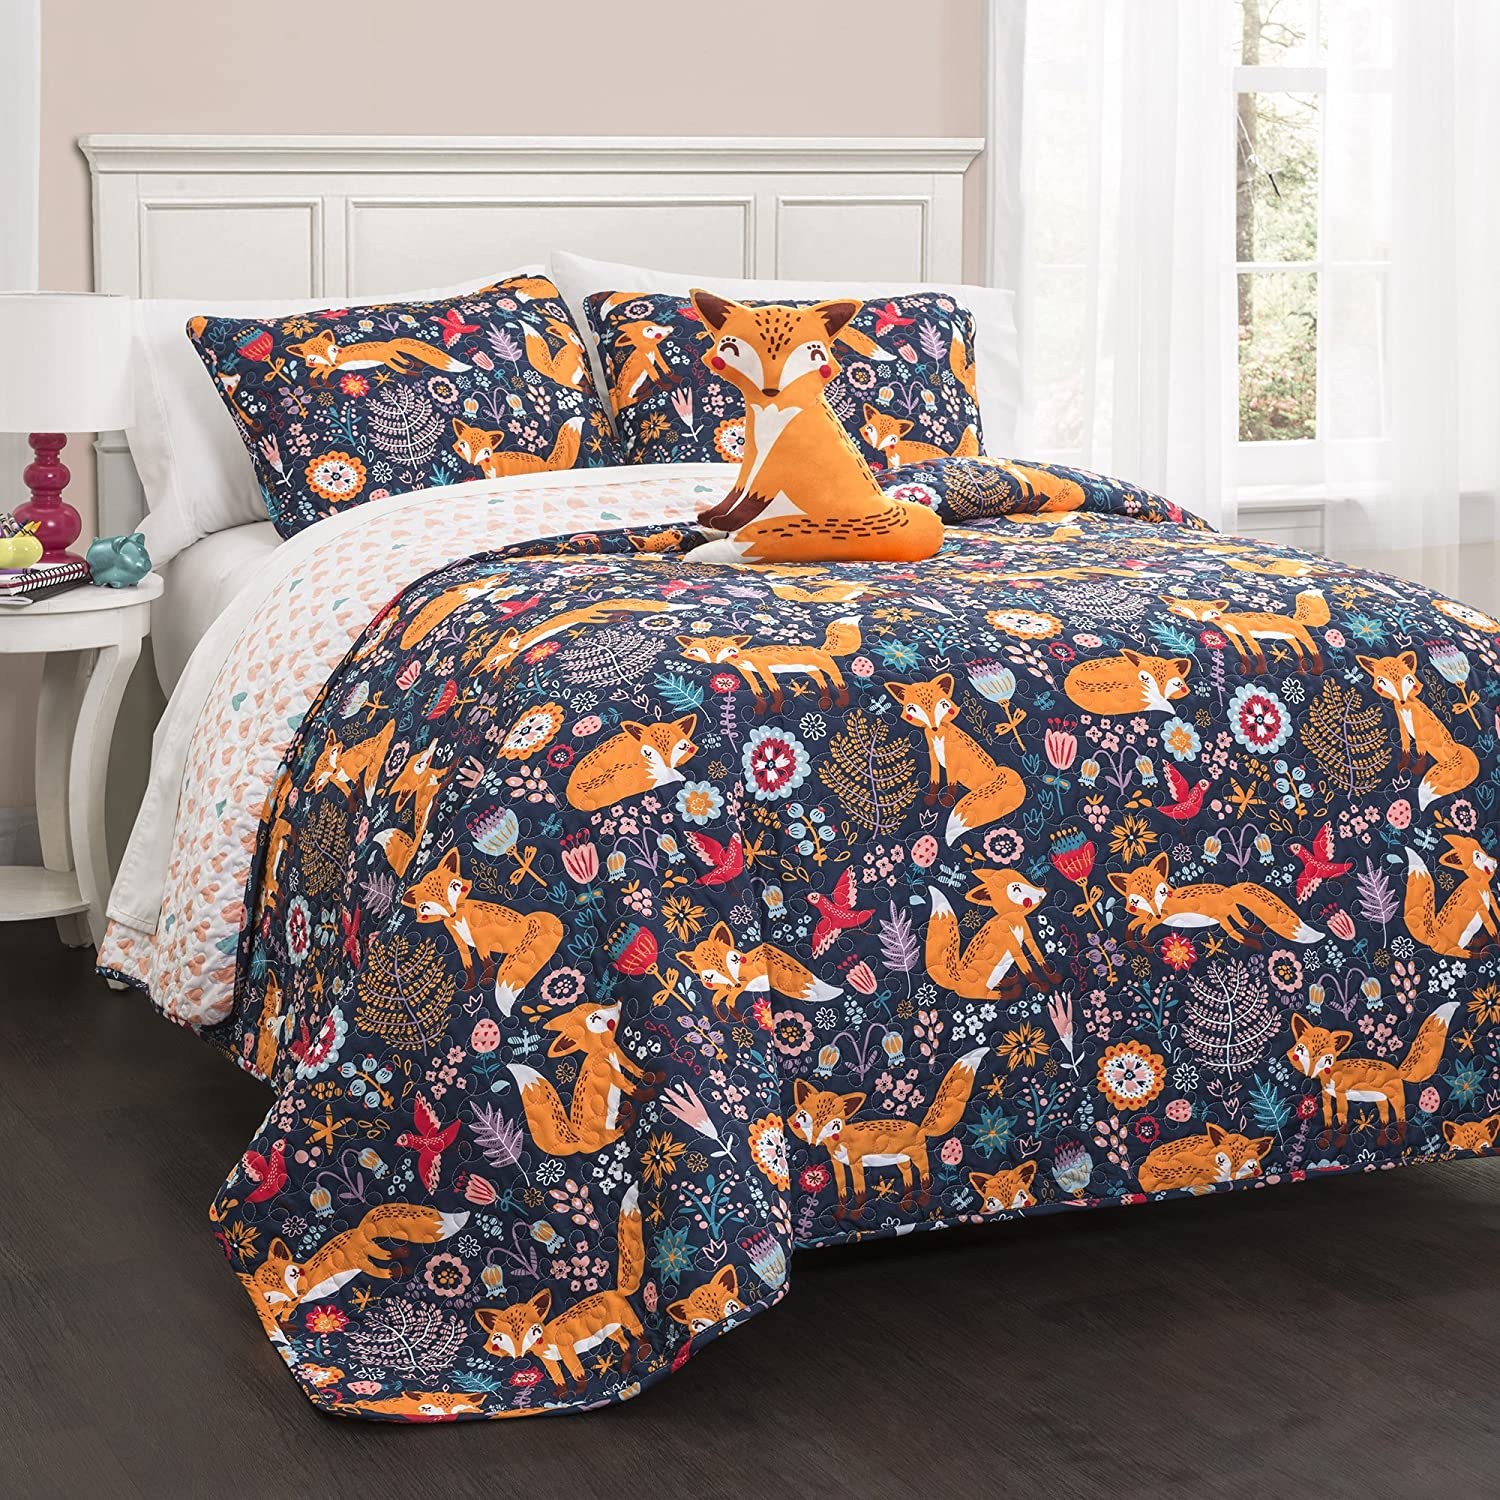 Lush Decor Pixie Fox Quilt Reversible 4 Piece Bedding Set - Navy - Full/Queen,